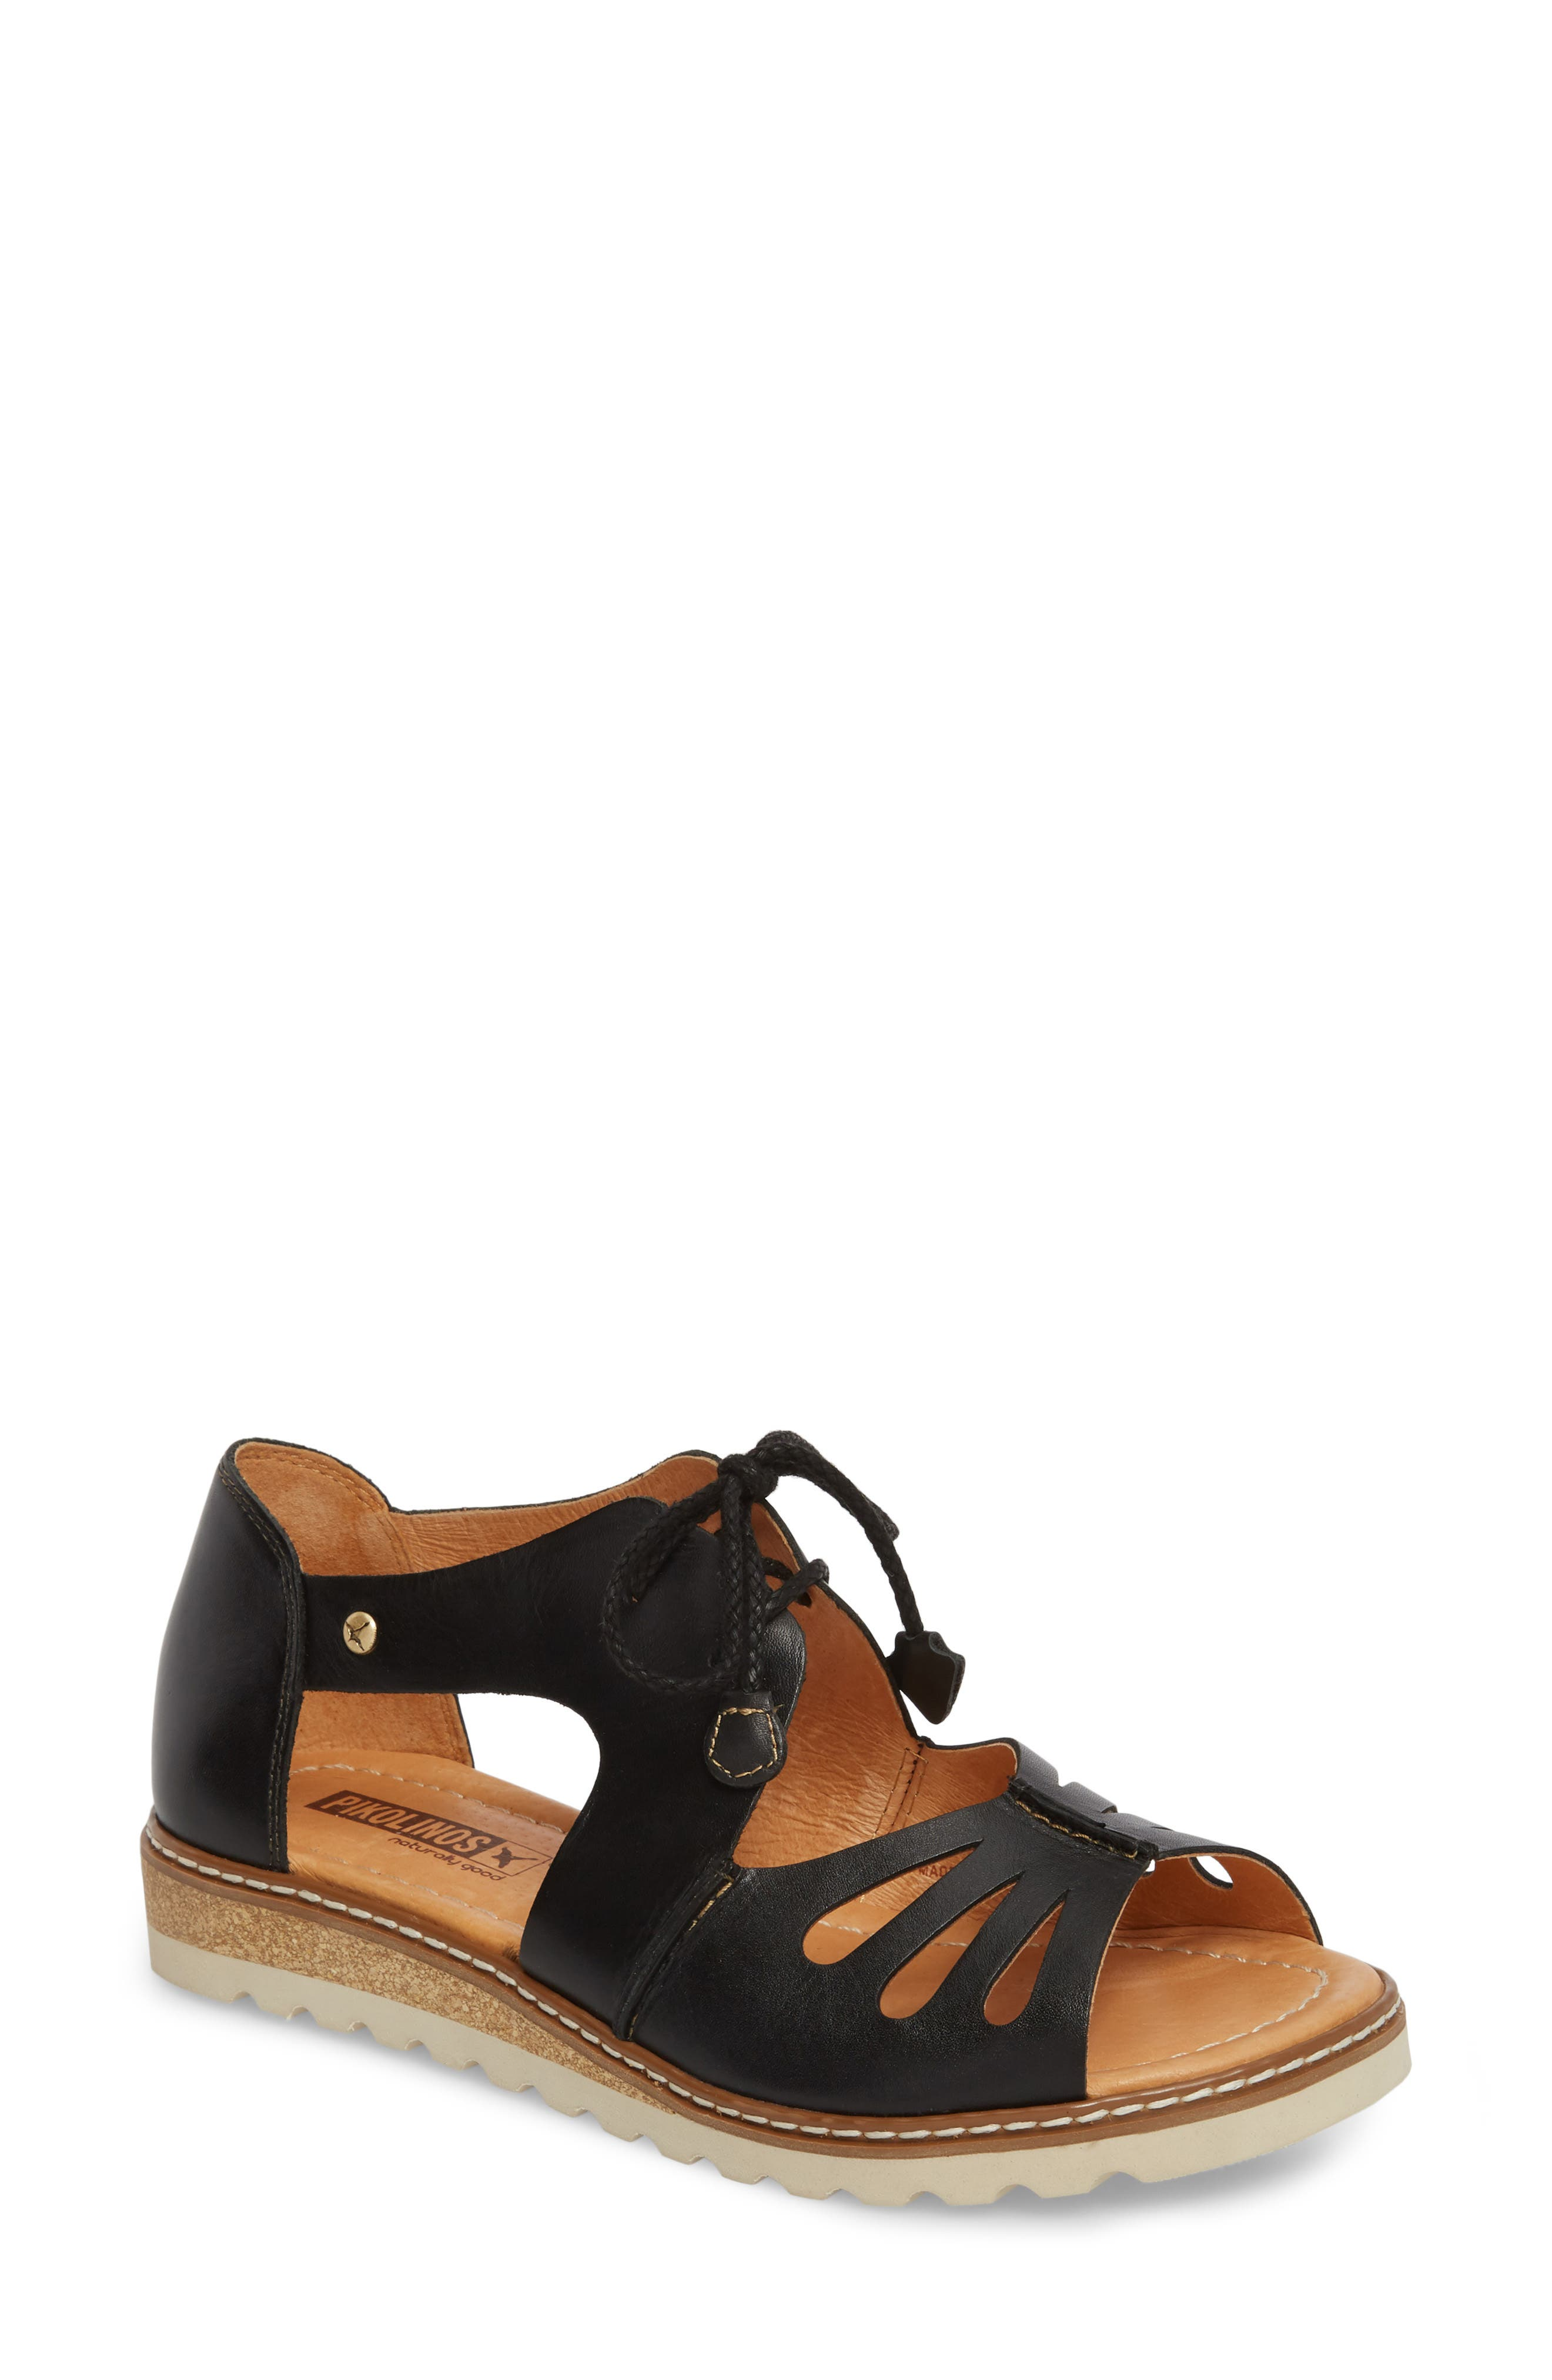 Alcudia Lace-Up Sandal,                         Main,                         color, BLACK LEATHER